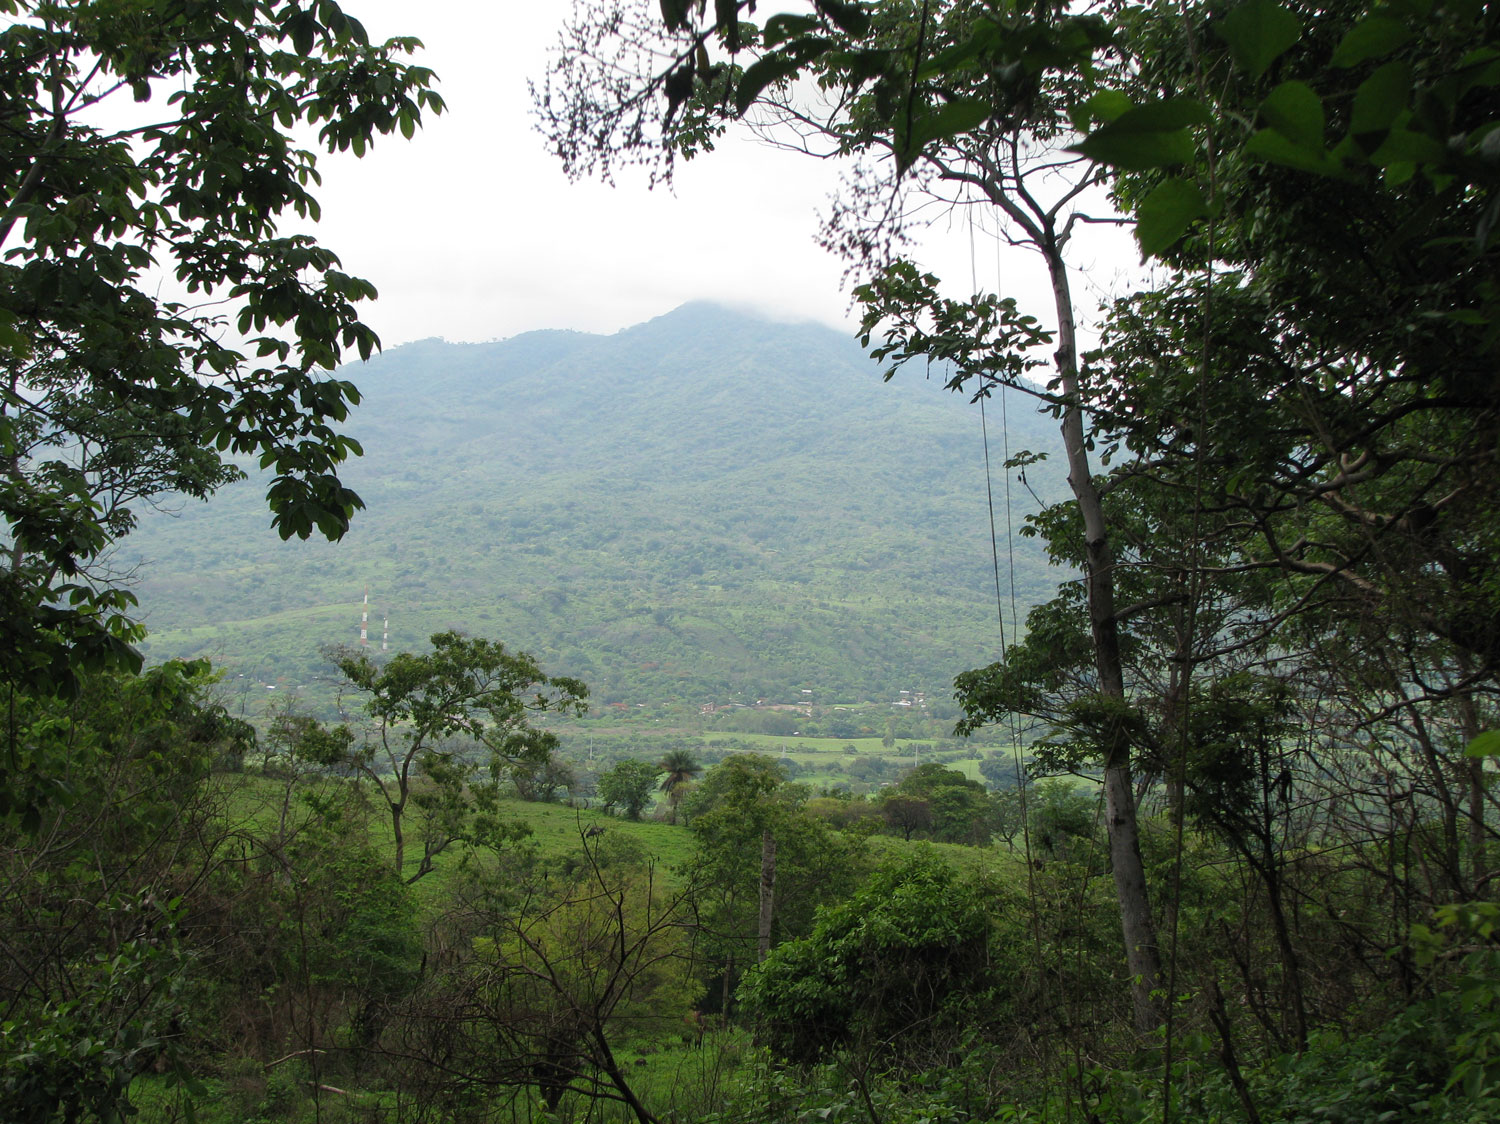 A view looking towards Volcan Rota across from the Gracias a Dios community